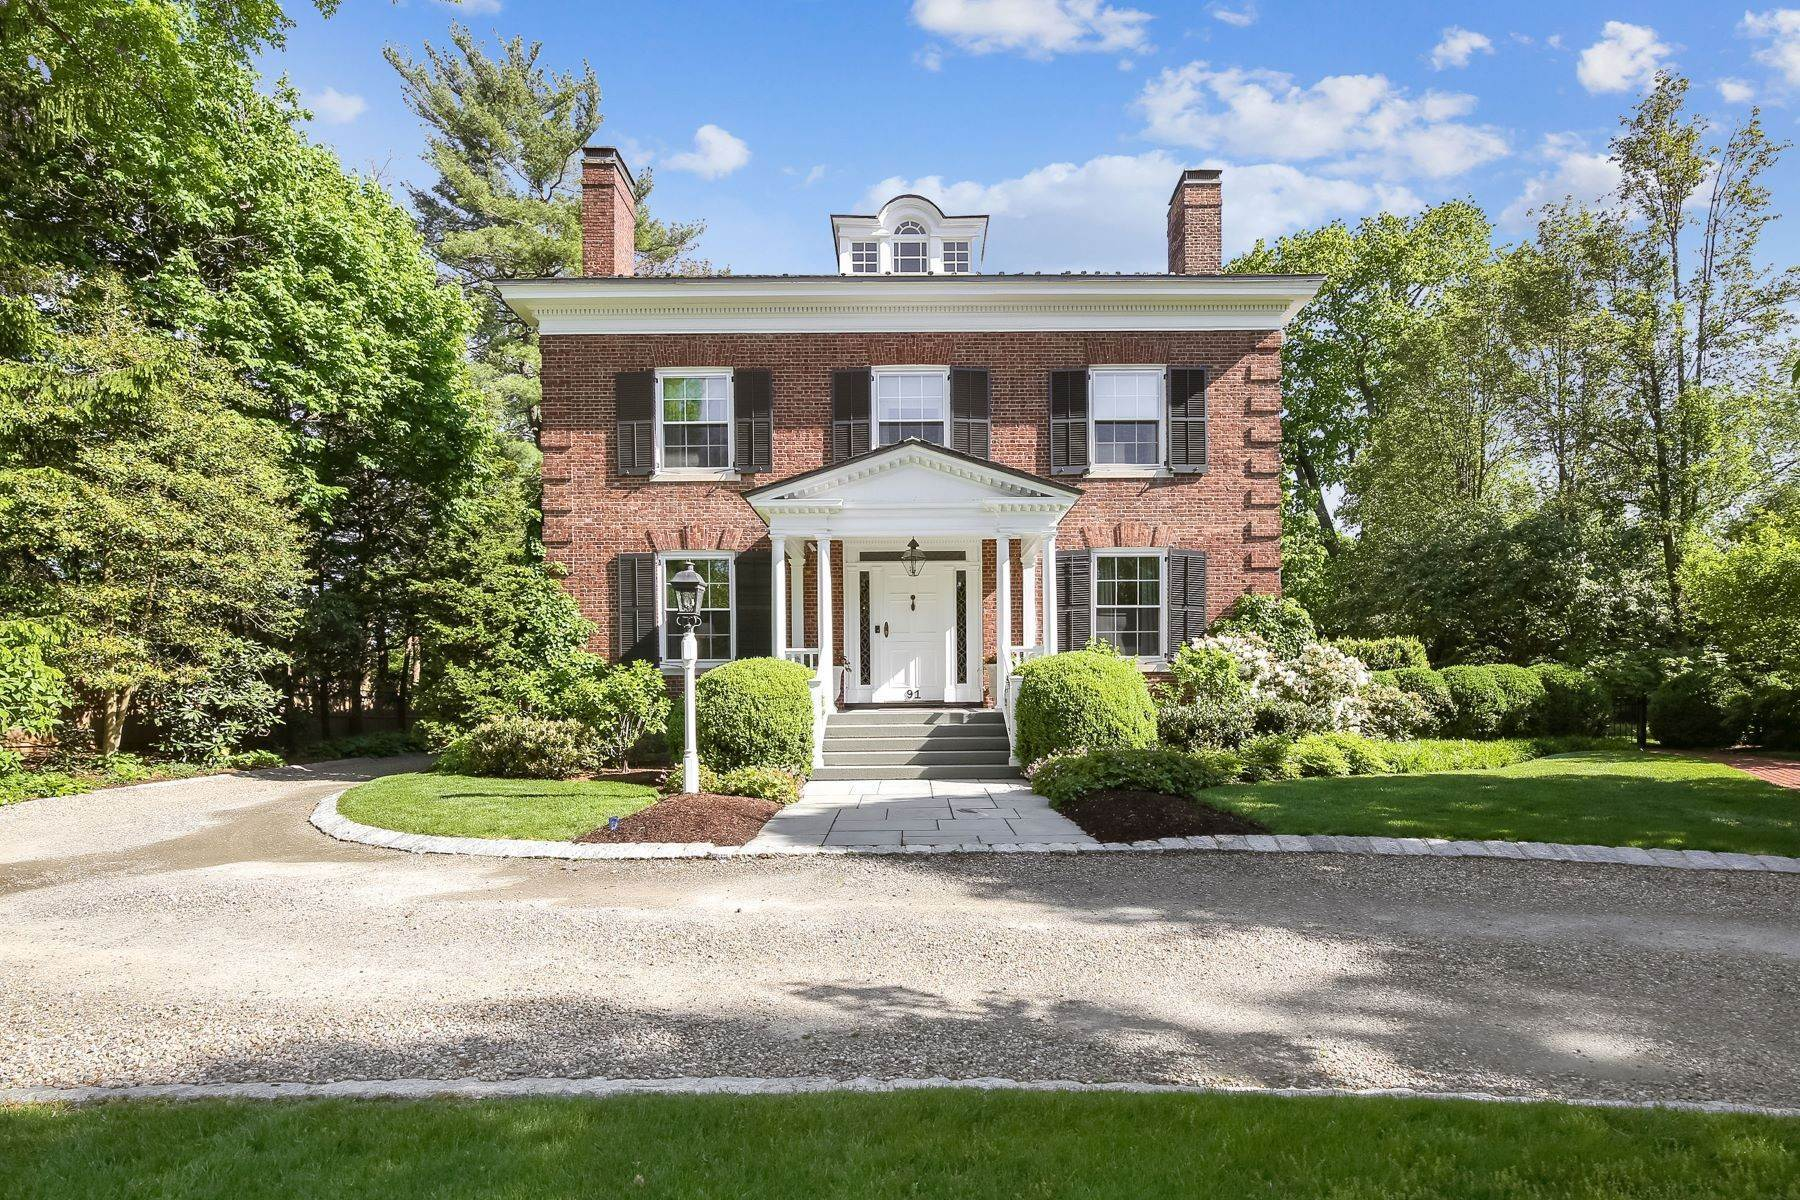 Single Family Homes for Sale at Georgian Revival 91 Prospect Street Summit, New Jersey 07901 United States